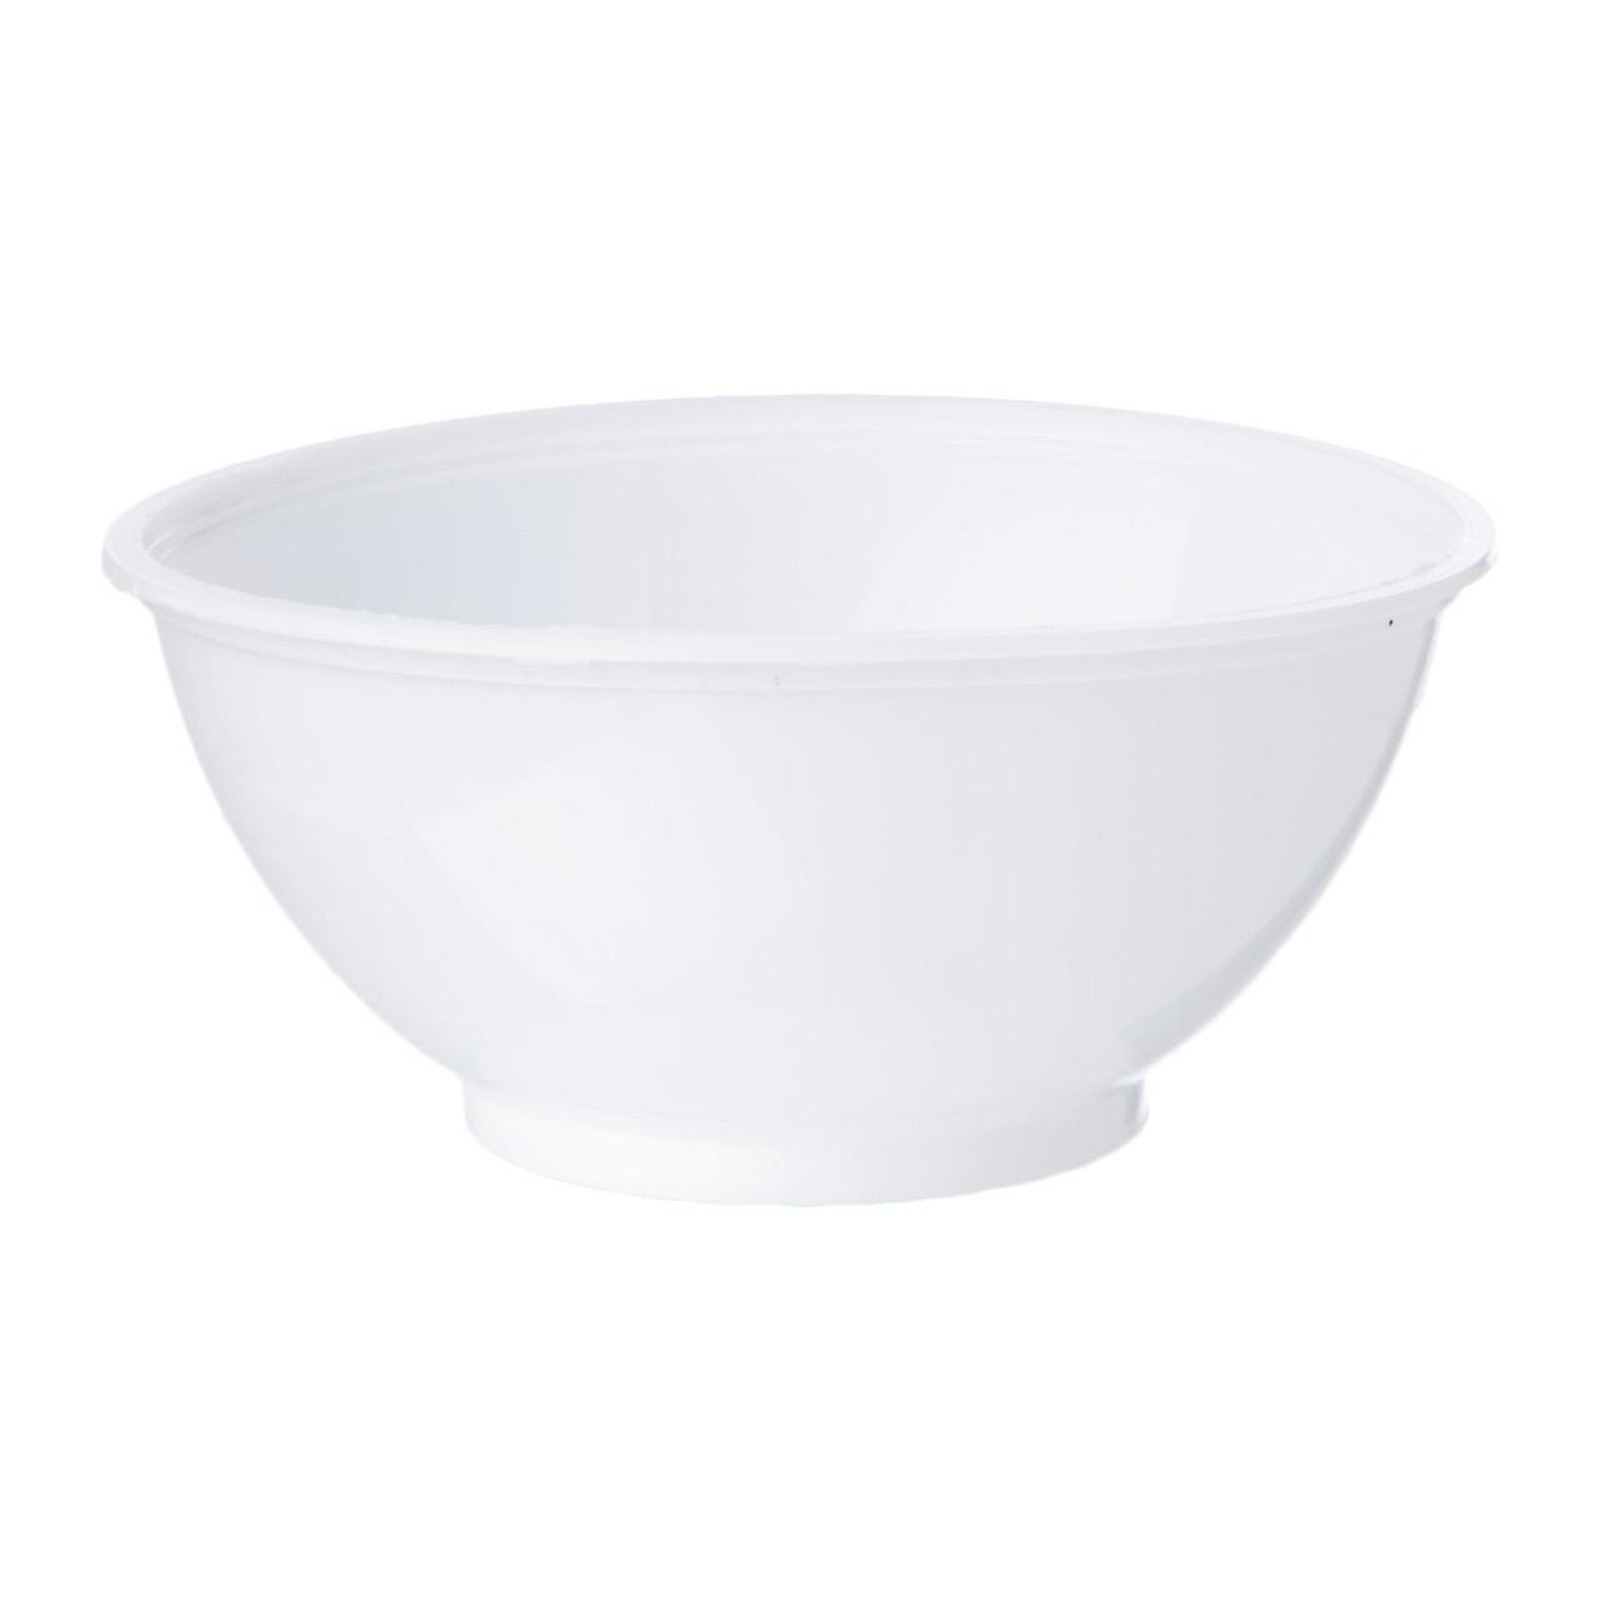 MTRADE Disposable 12 Oz PP White Plastic Bowl